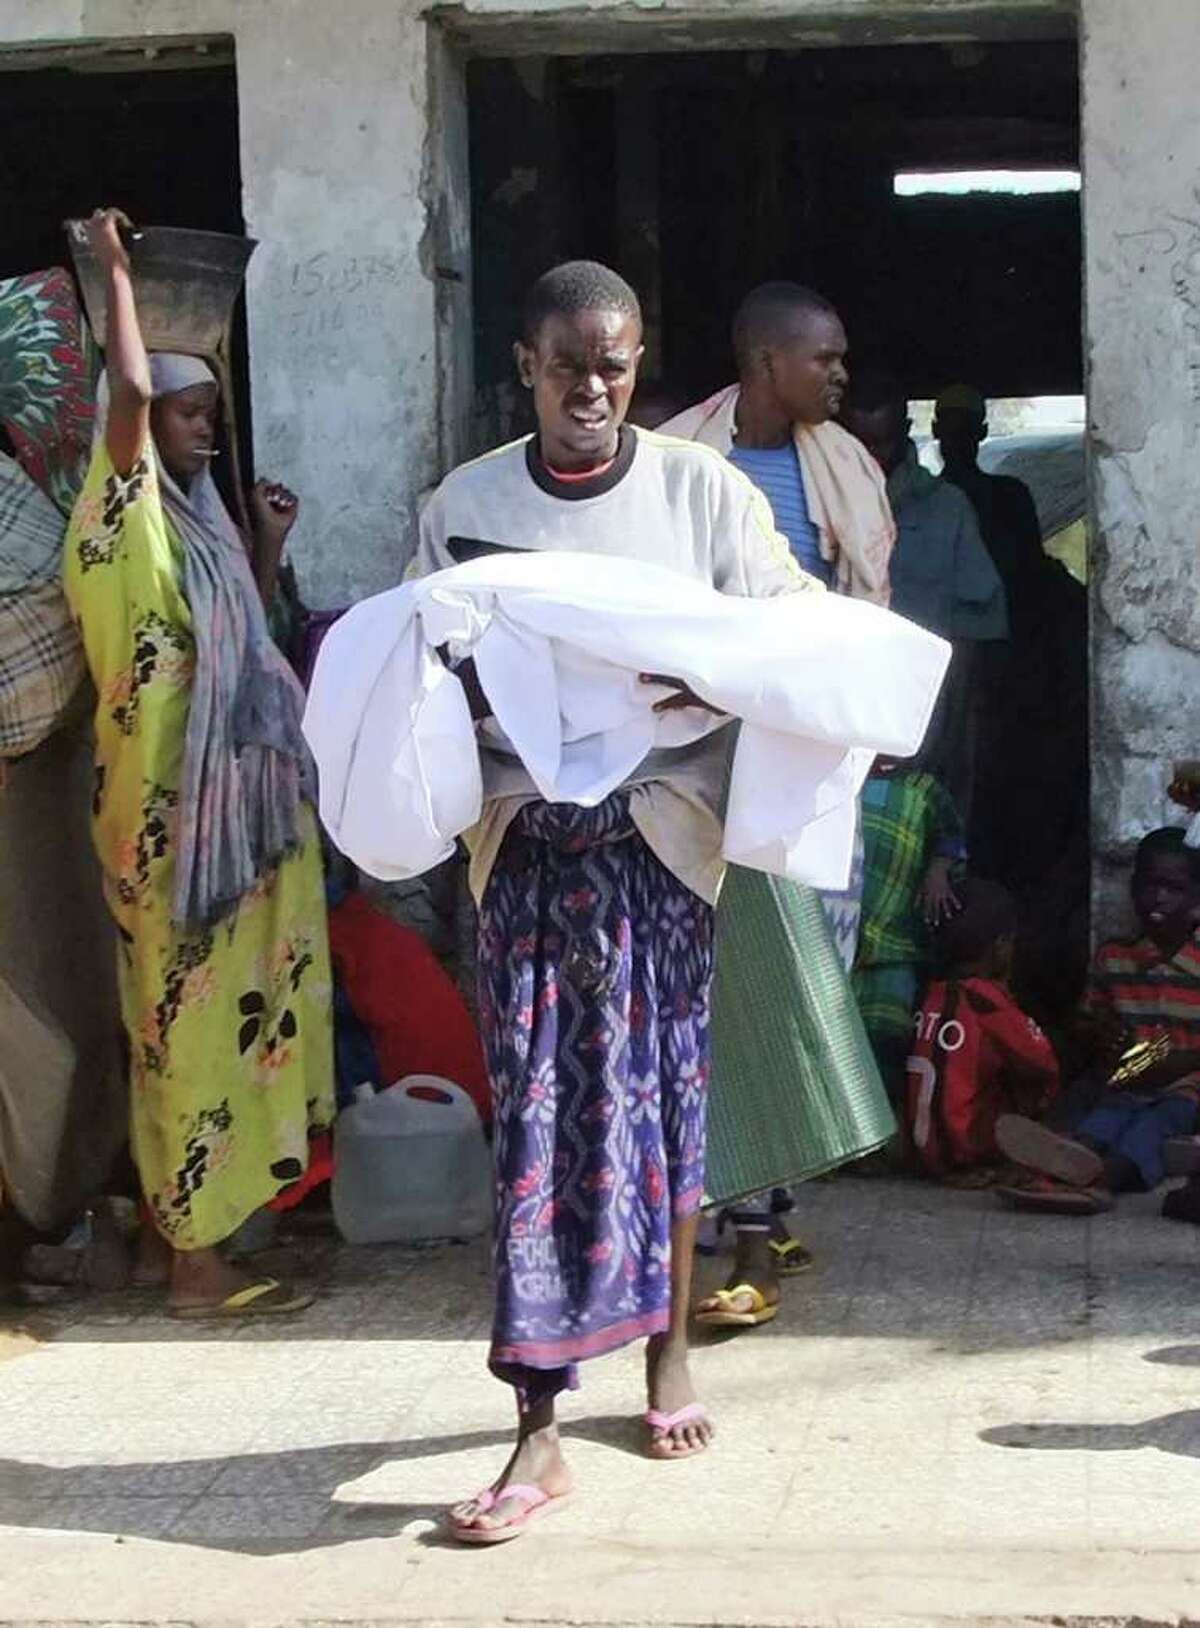 """A Southern Somali man carries his dead child in Mogadishu, Somalia, Monday, Sept. 5, 2011. Famine has spread into one more region of Somalia and hundreds of Somalis are dying every day, the United Nations said Monday, describing getting aid to the starving as a """"race against time"""" and warned the famine would probably spread before the end of the year. (AP Photo/Farah Abdi Warsameh)"""